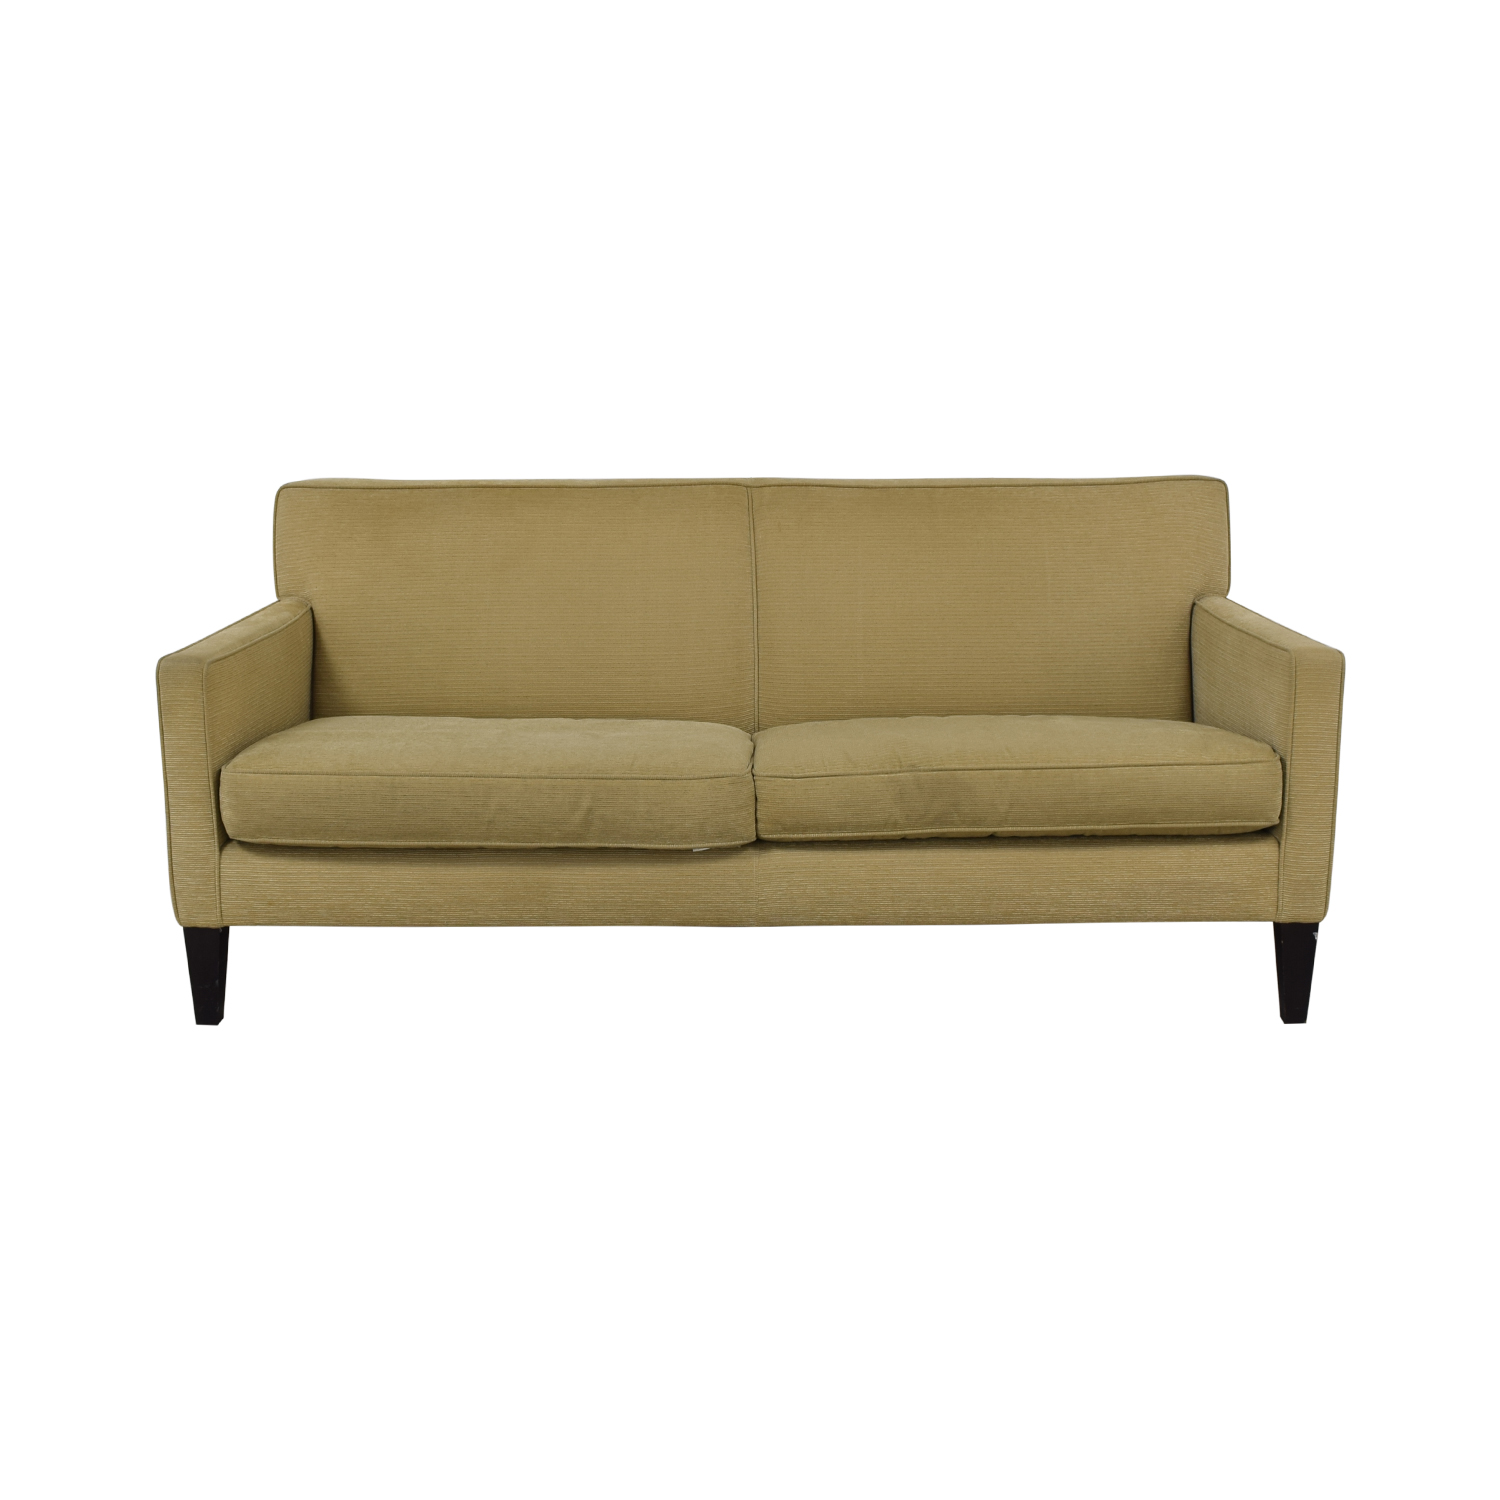 Crate & Barrel Rochelle Fabric Sofa / Sofas